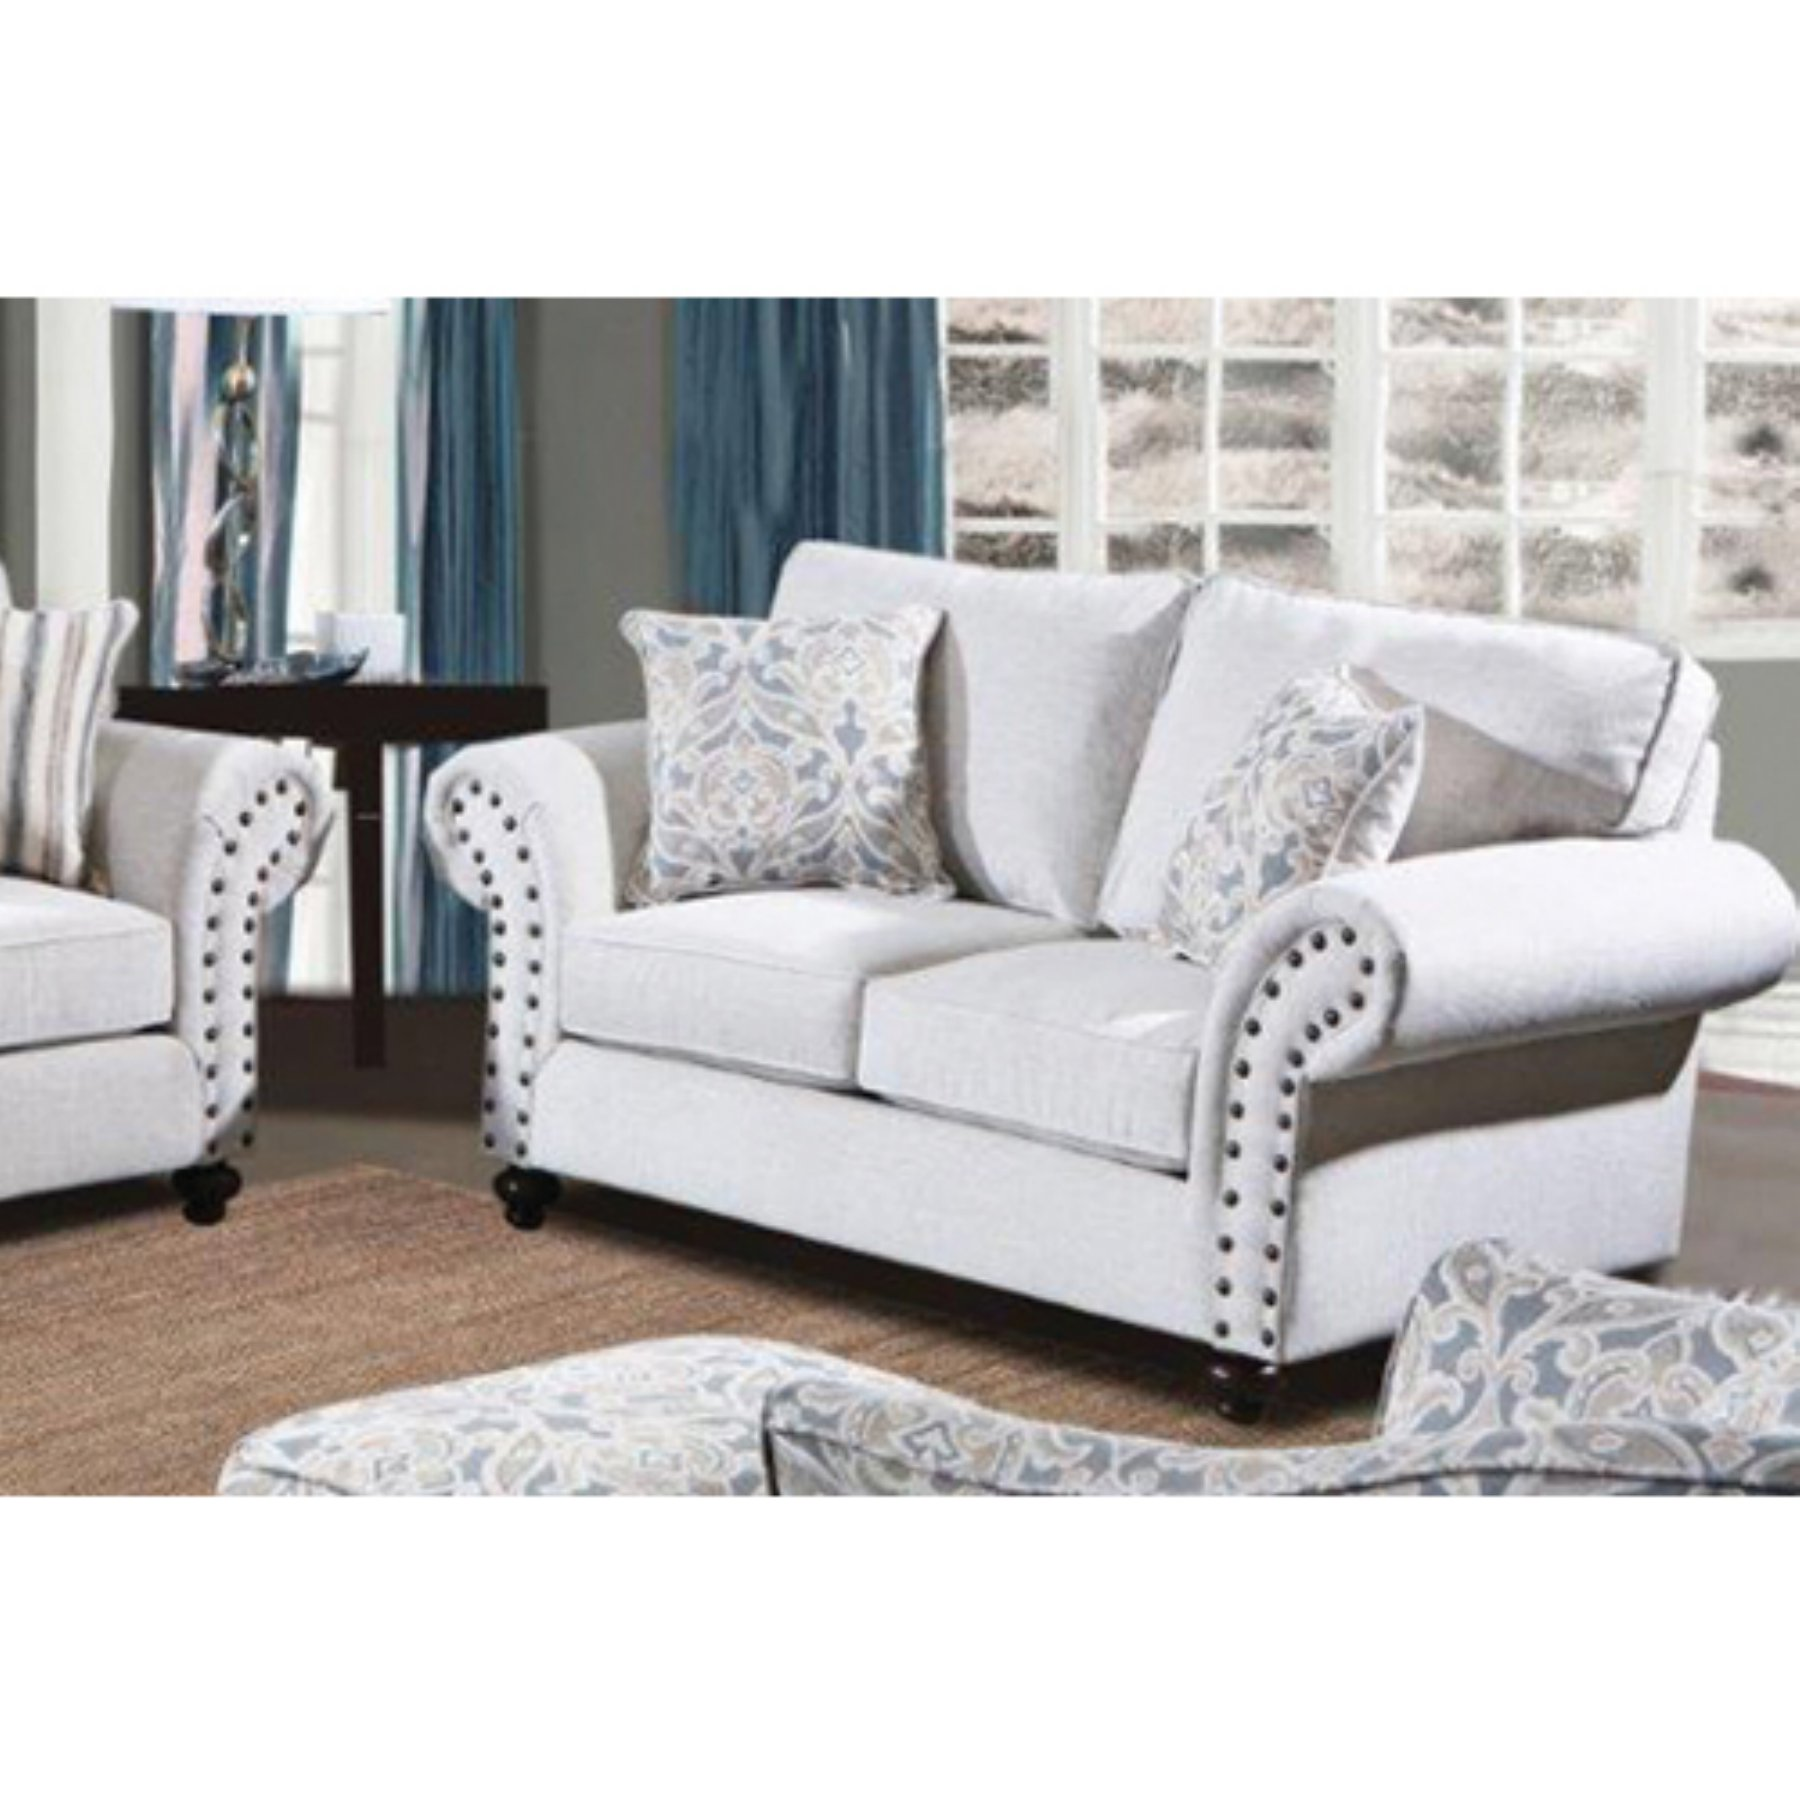 Chelsea Home Furniture Camryn Loveseat  781450 02 L Cs